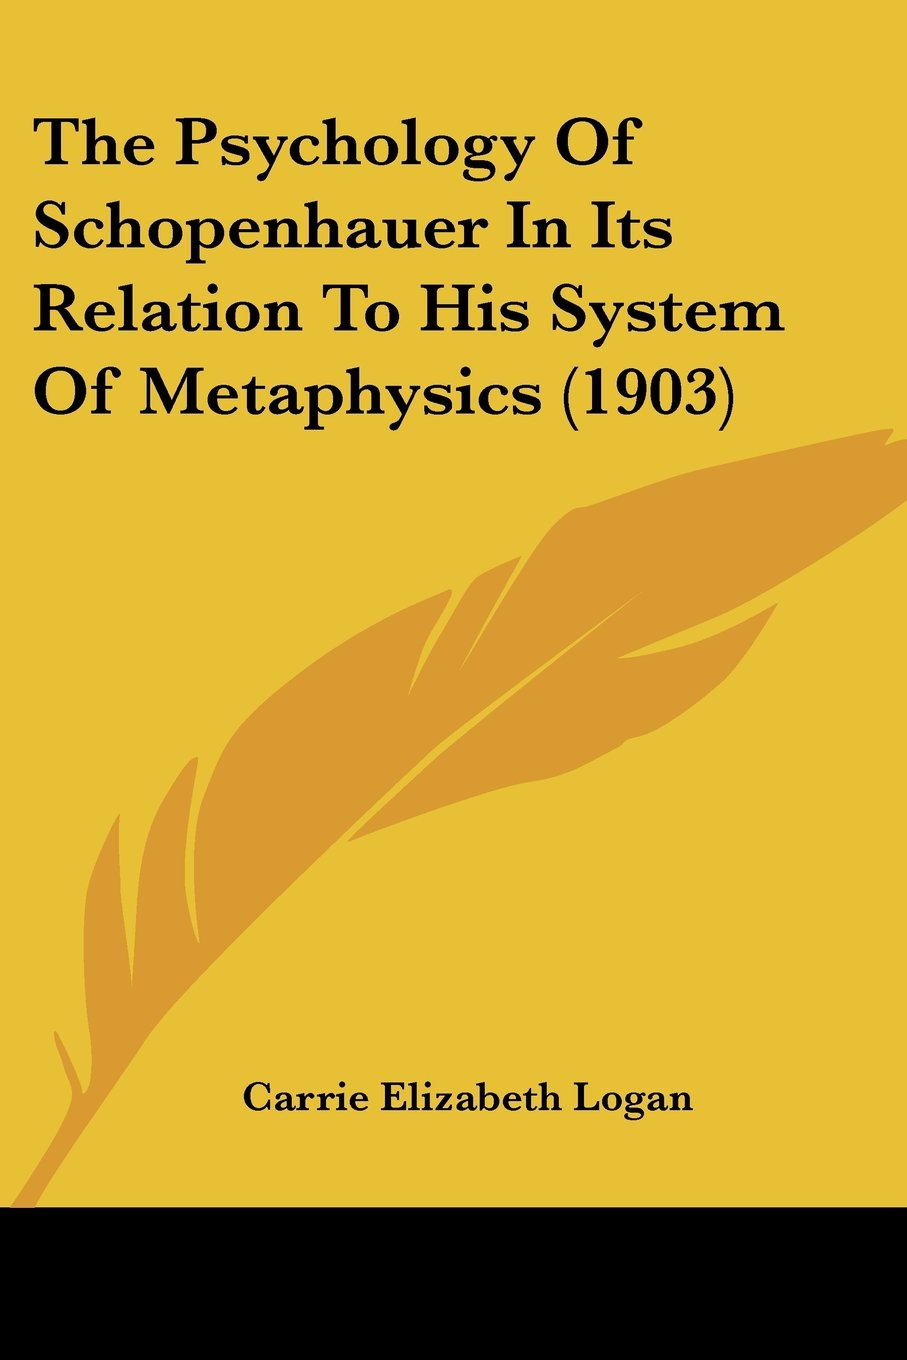 The Psychology Of Schopenhauer In Its Relation To His System Of Metaphysics (1903) pdf epub